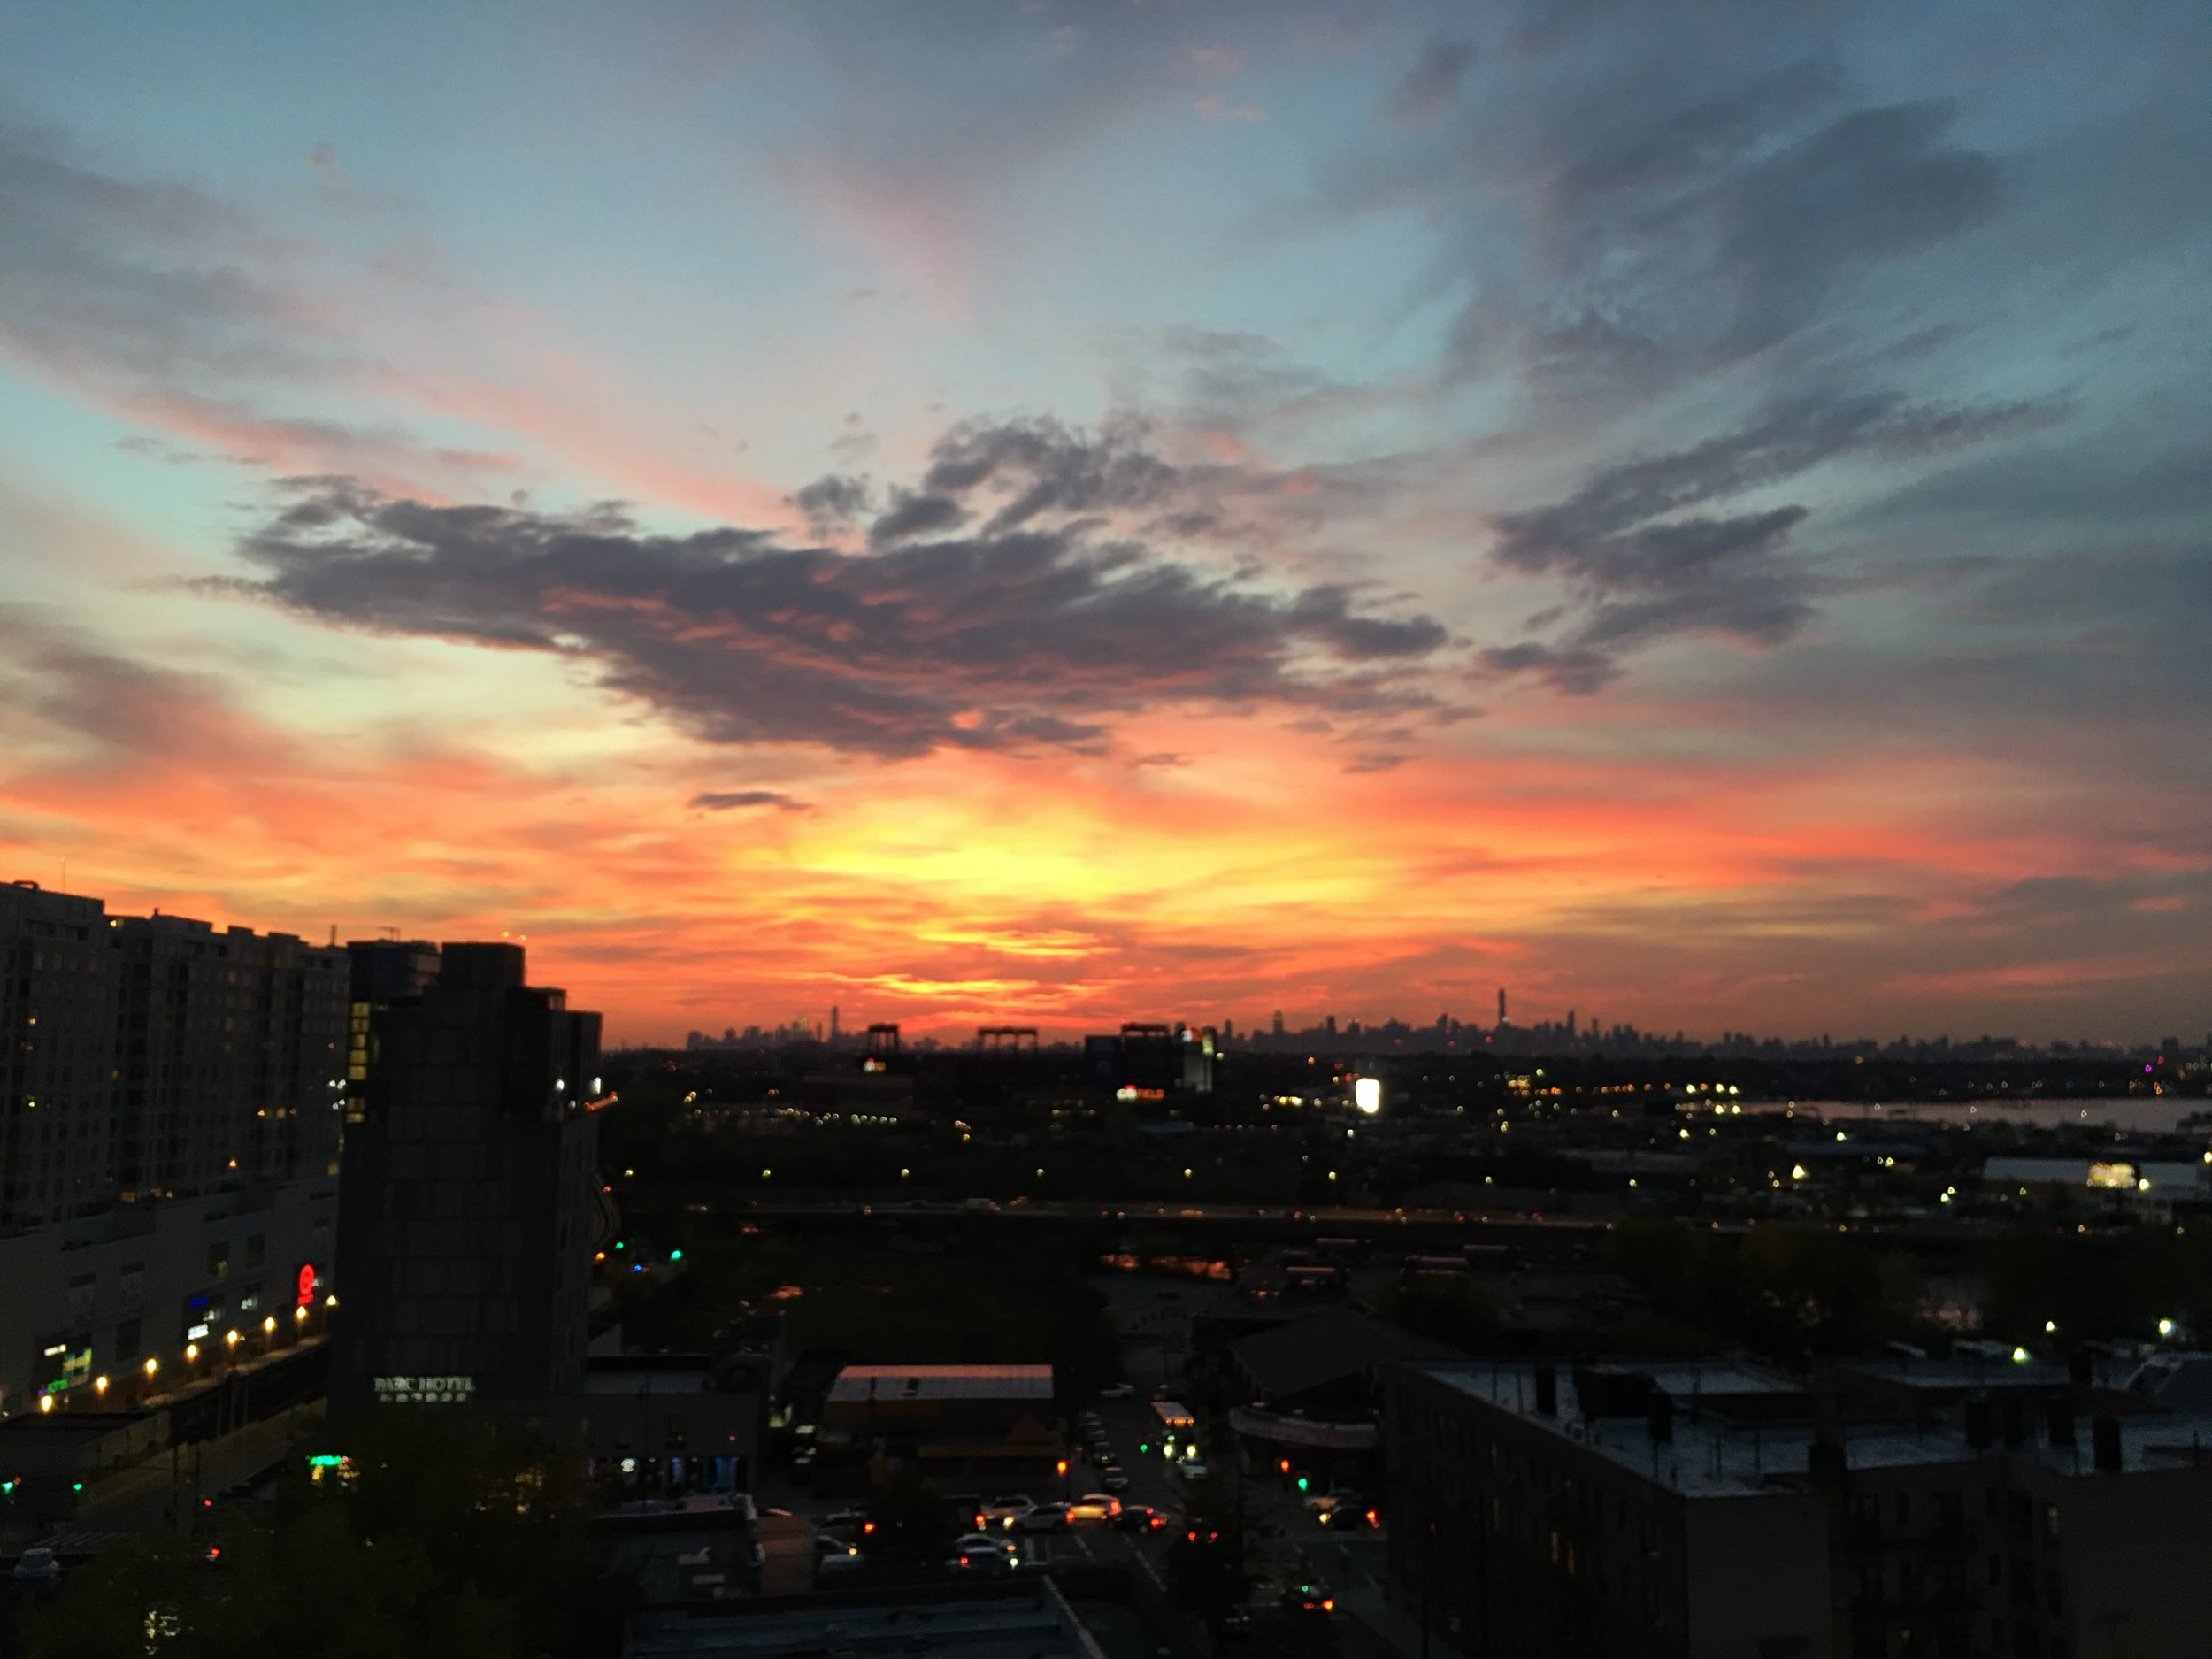 ENJOY THE VIEW FROM OUR ROOFTOP - The sunsets are spectacular.